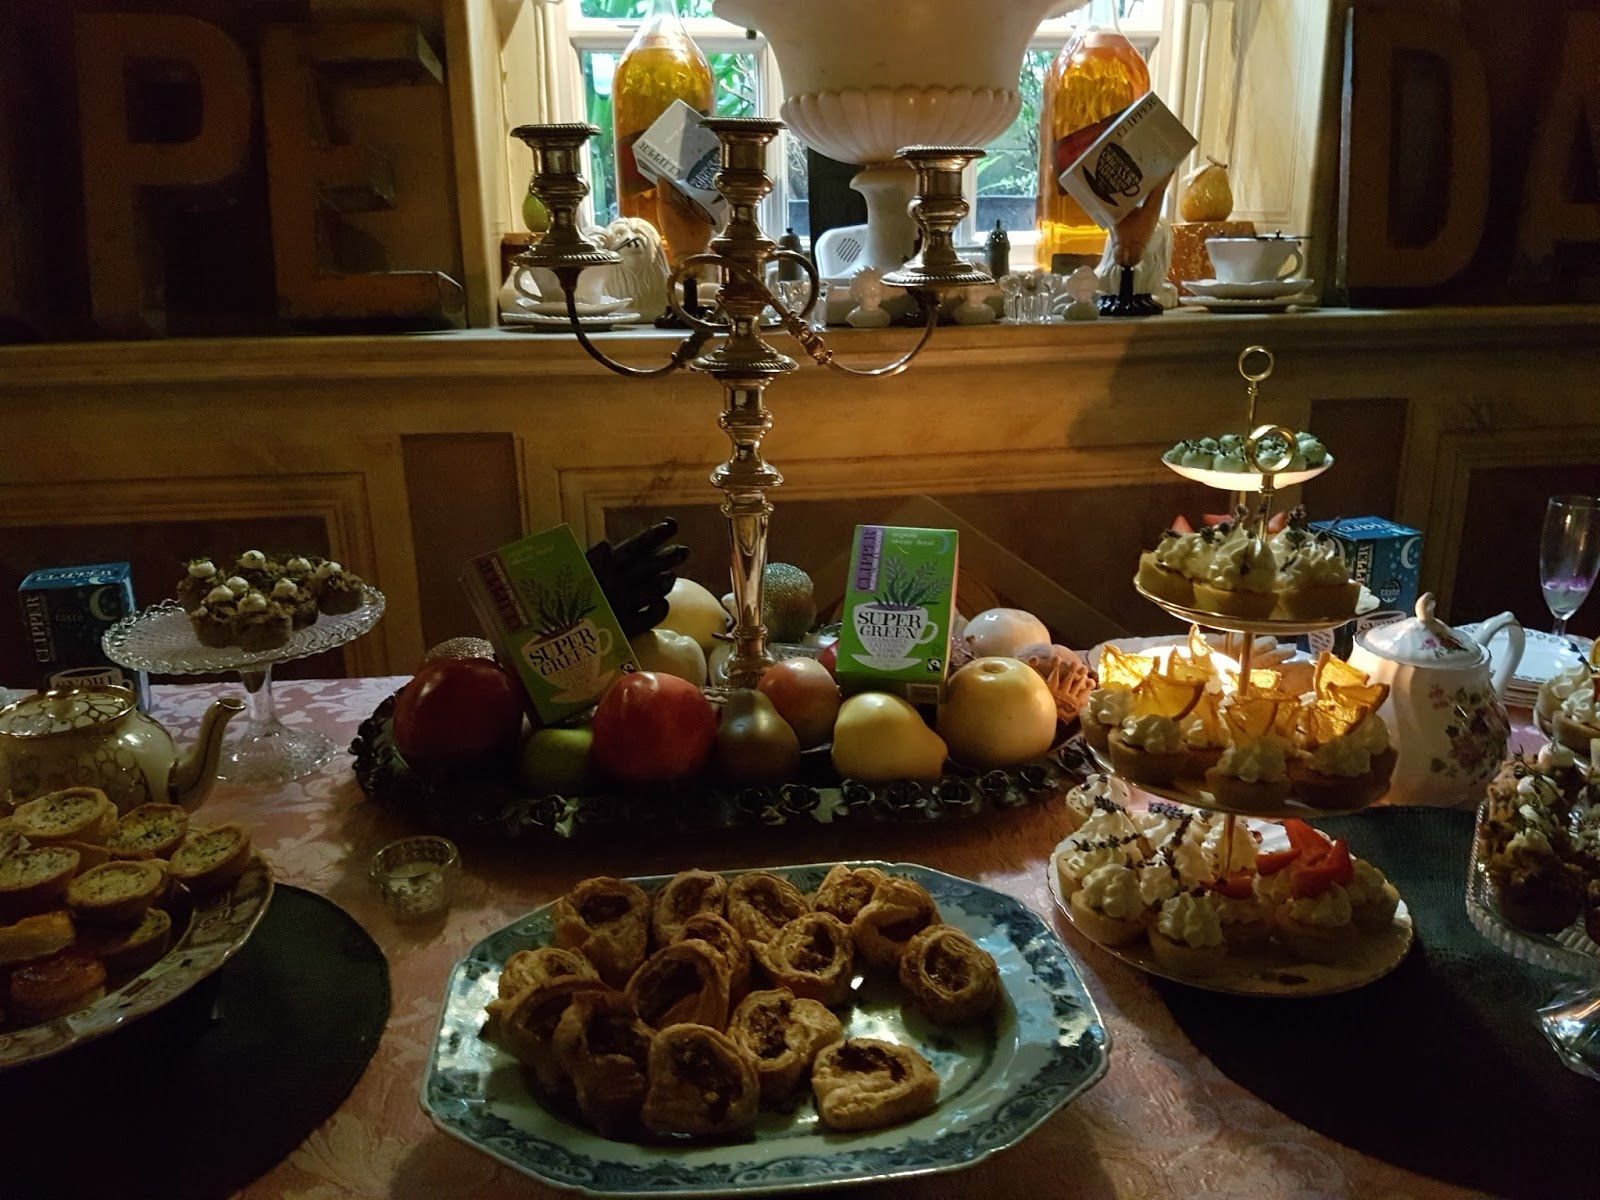 clipper teas and canapes on a table